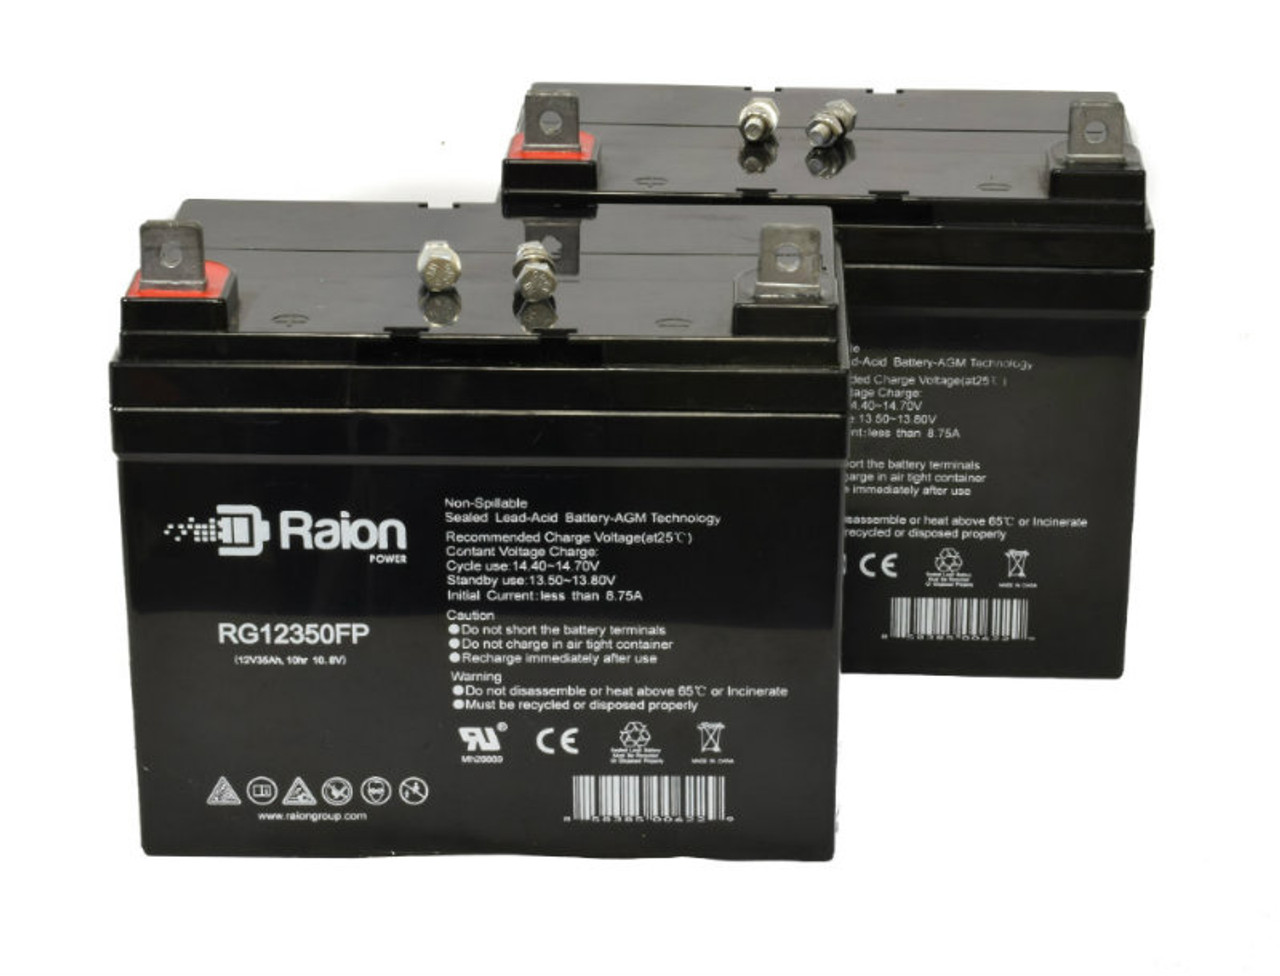 Raion Power RG12350FP Replacement Wheelchair Battery For Merits Travel-Ease P101-2S-S (2 Pack)